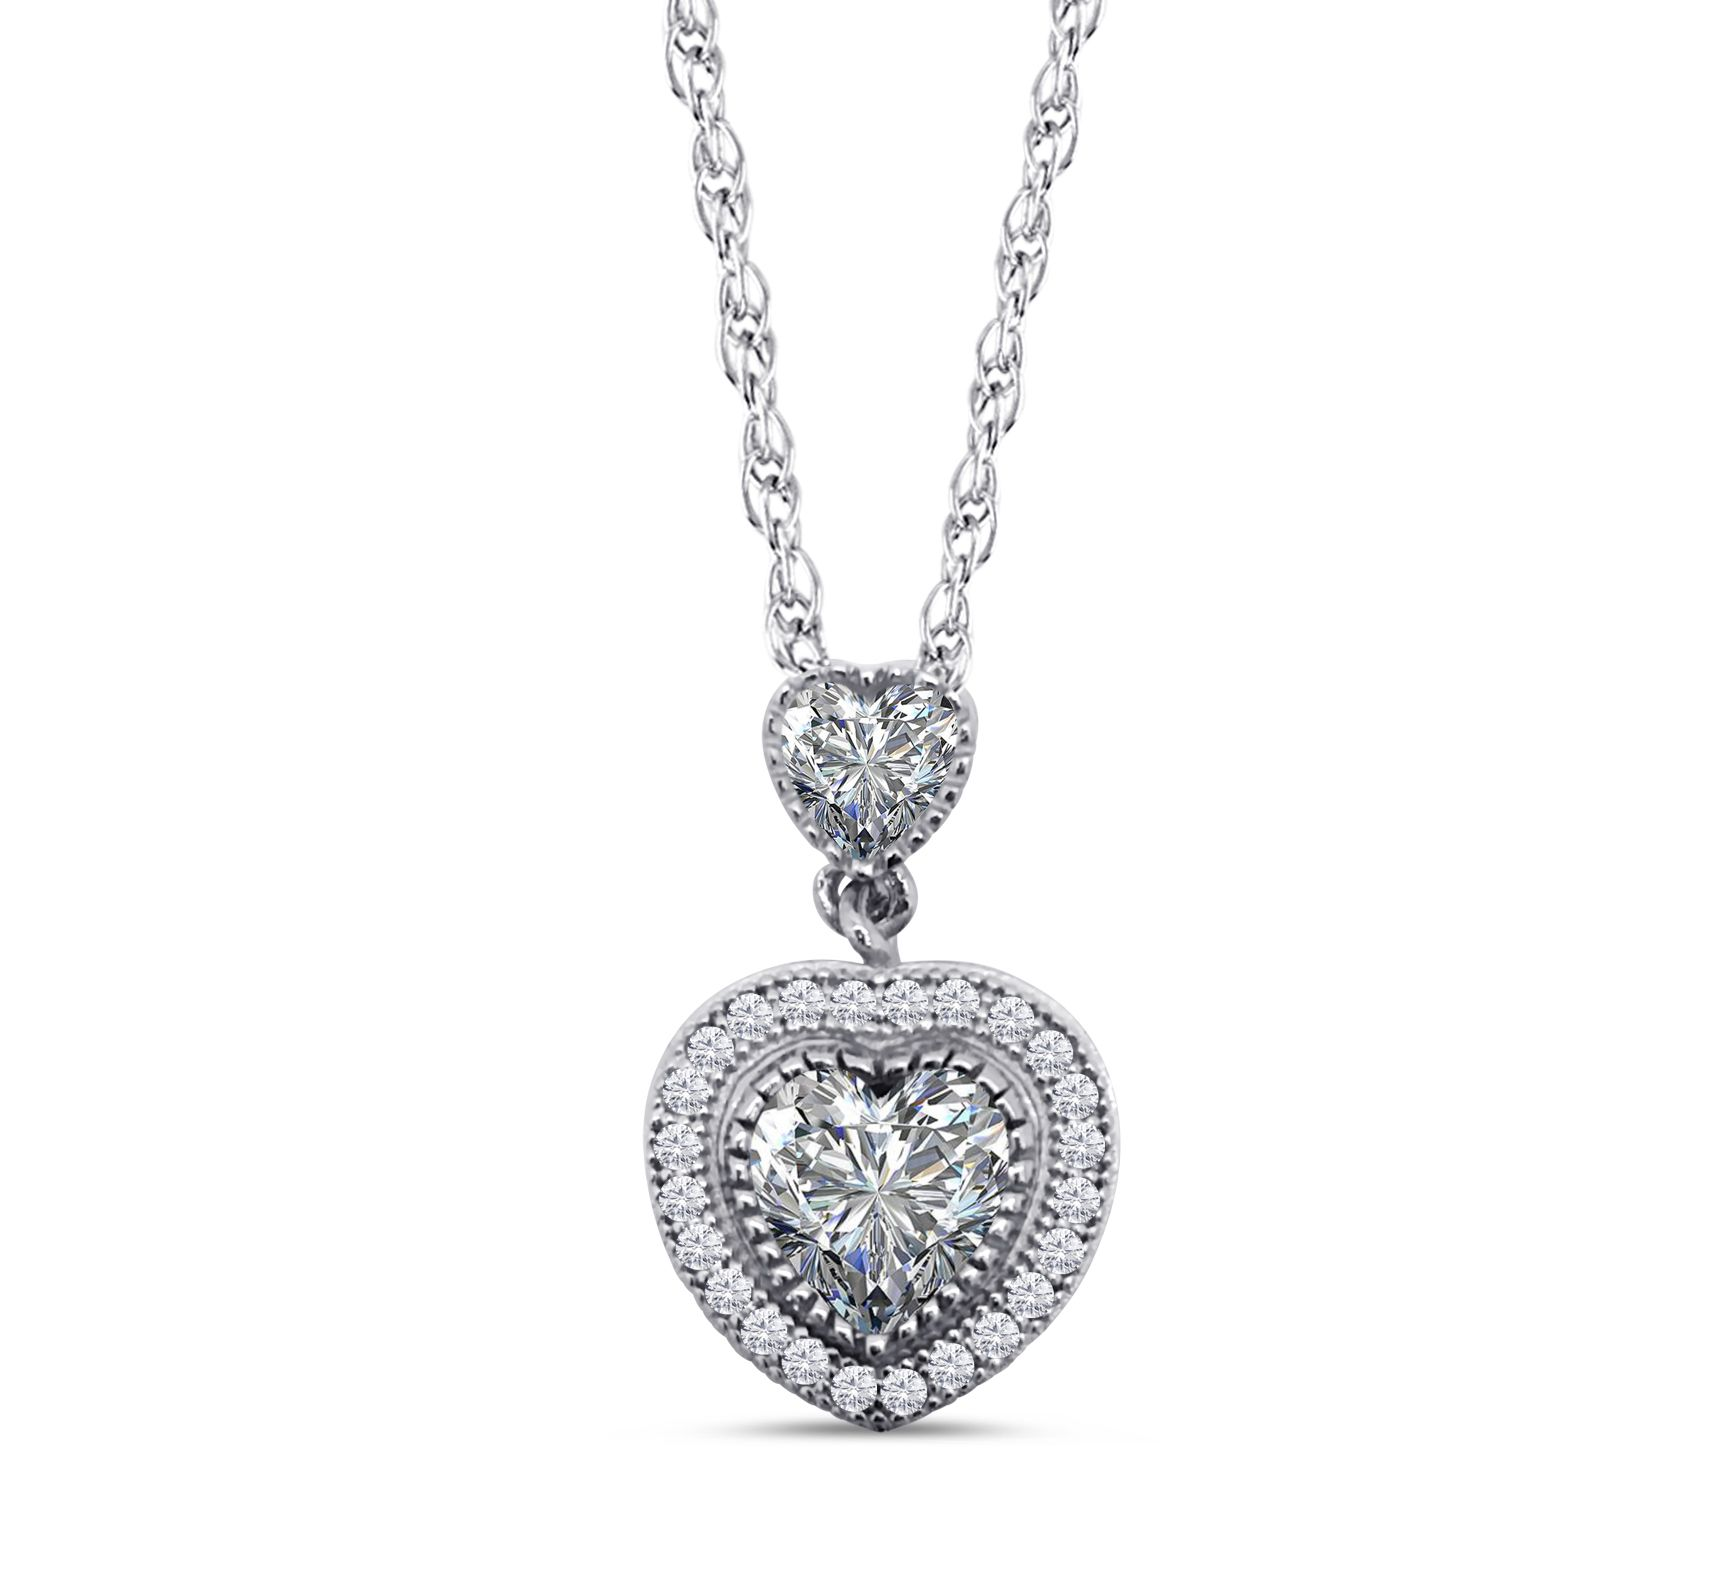 Dizeo heart necklace made in sterling silver with 18K gold overlay, set with lab created diamonds. Available at Crews Jewelry!